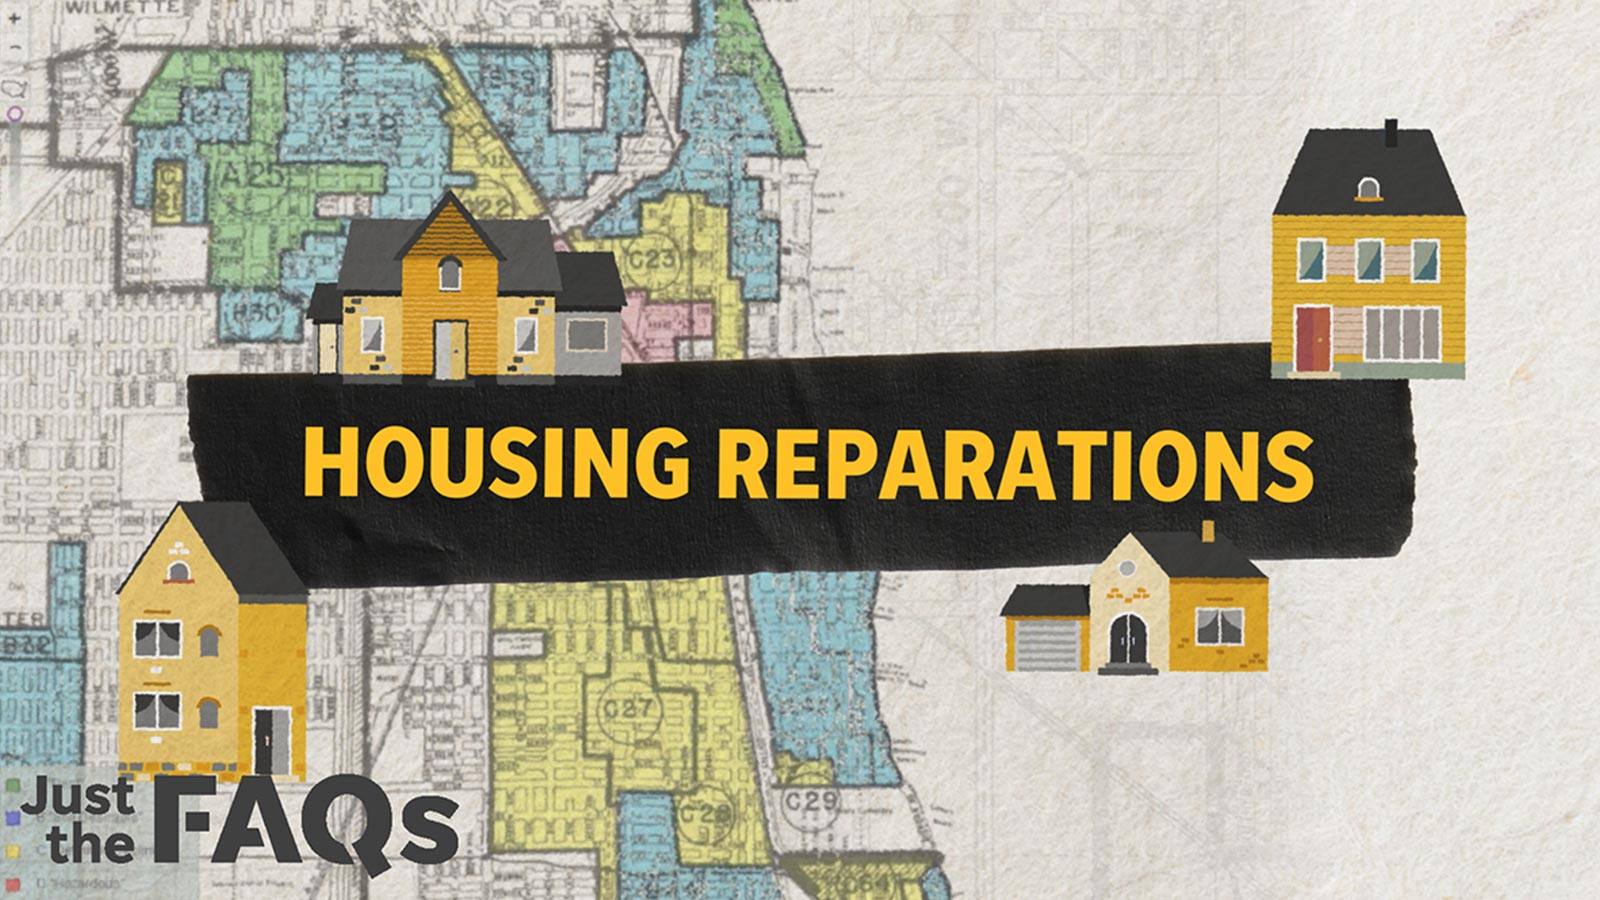 How housing reparations can help close the Black homeownership gap